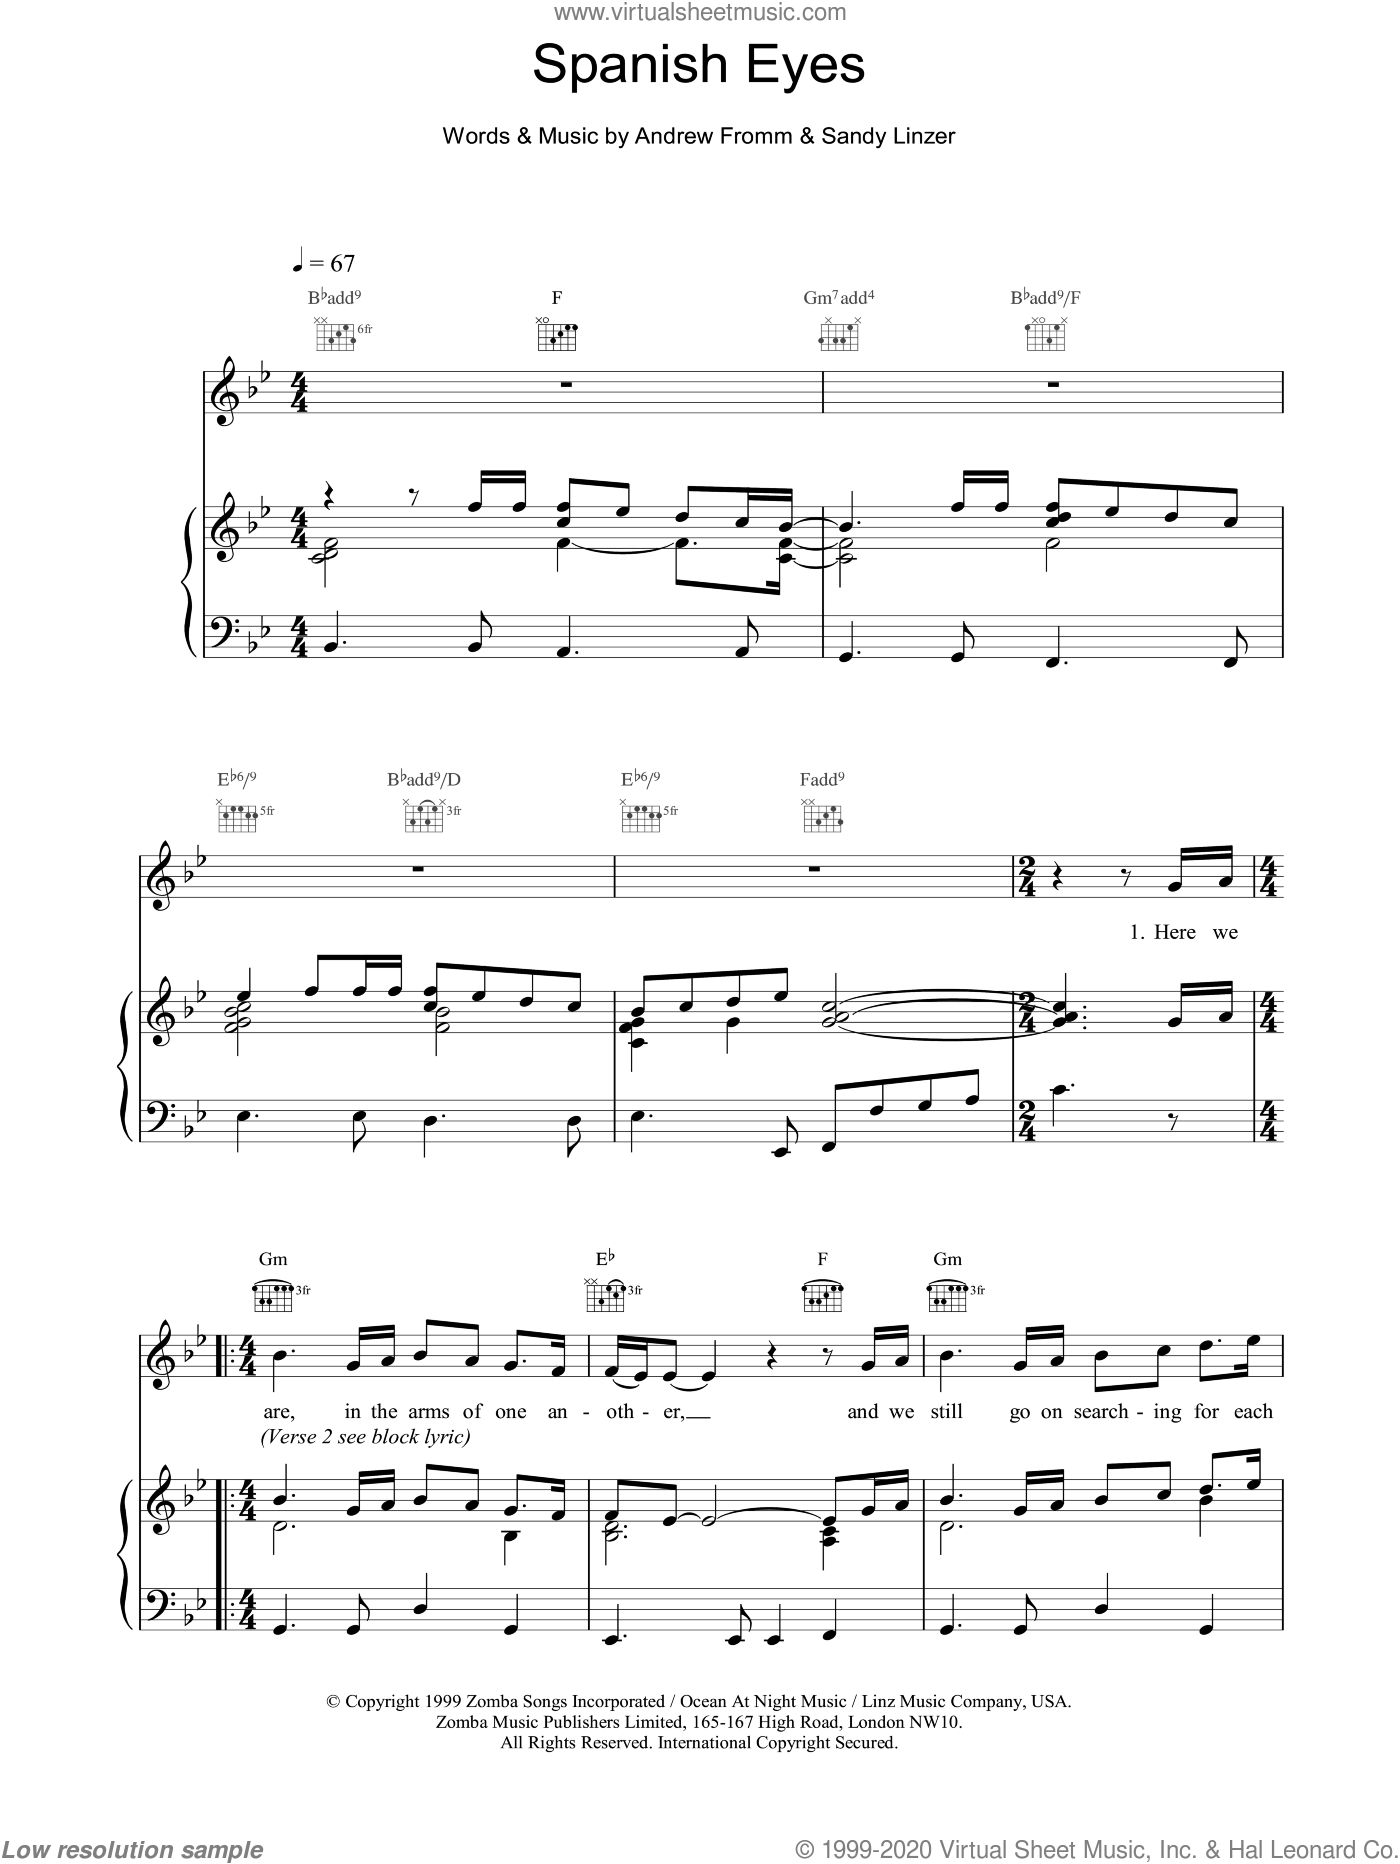 Spanish Eyes sheet music for voice, piano or guitar by Sandy Linzer